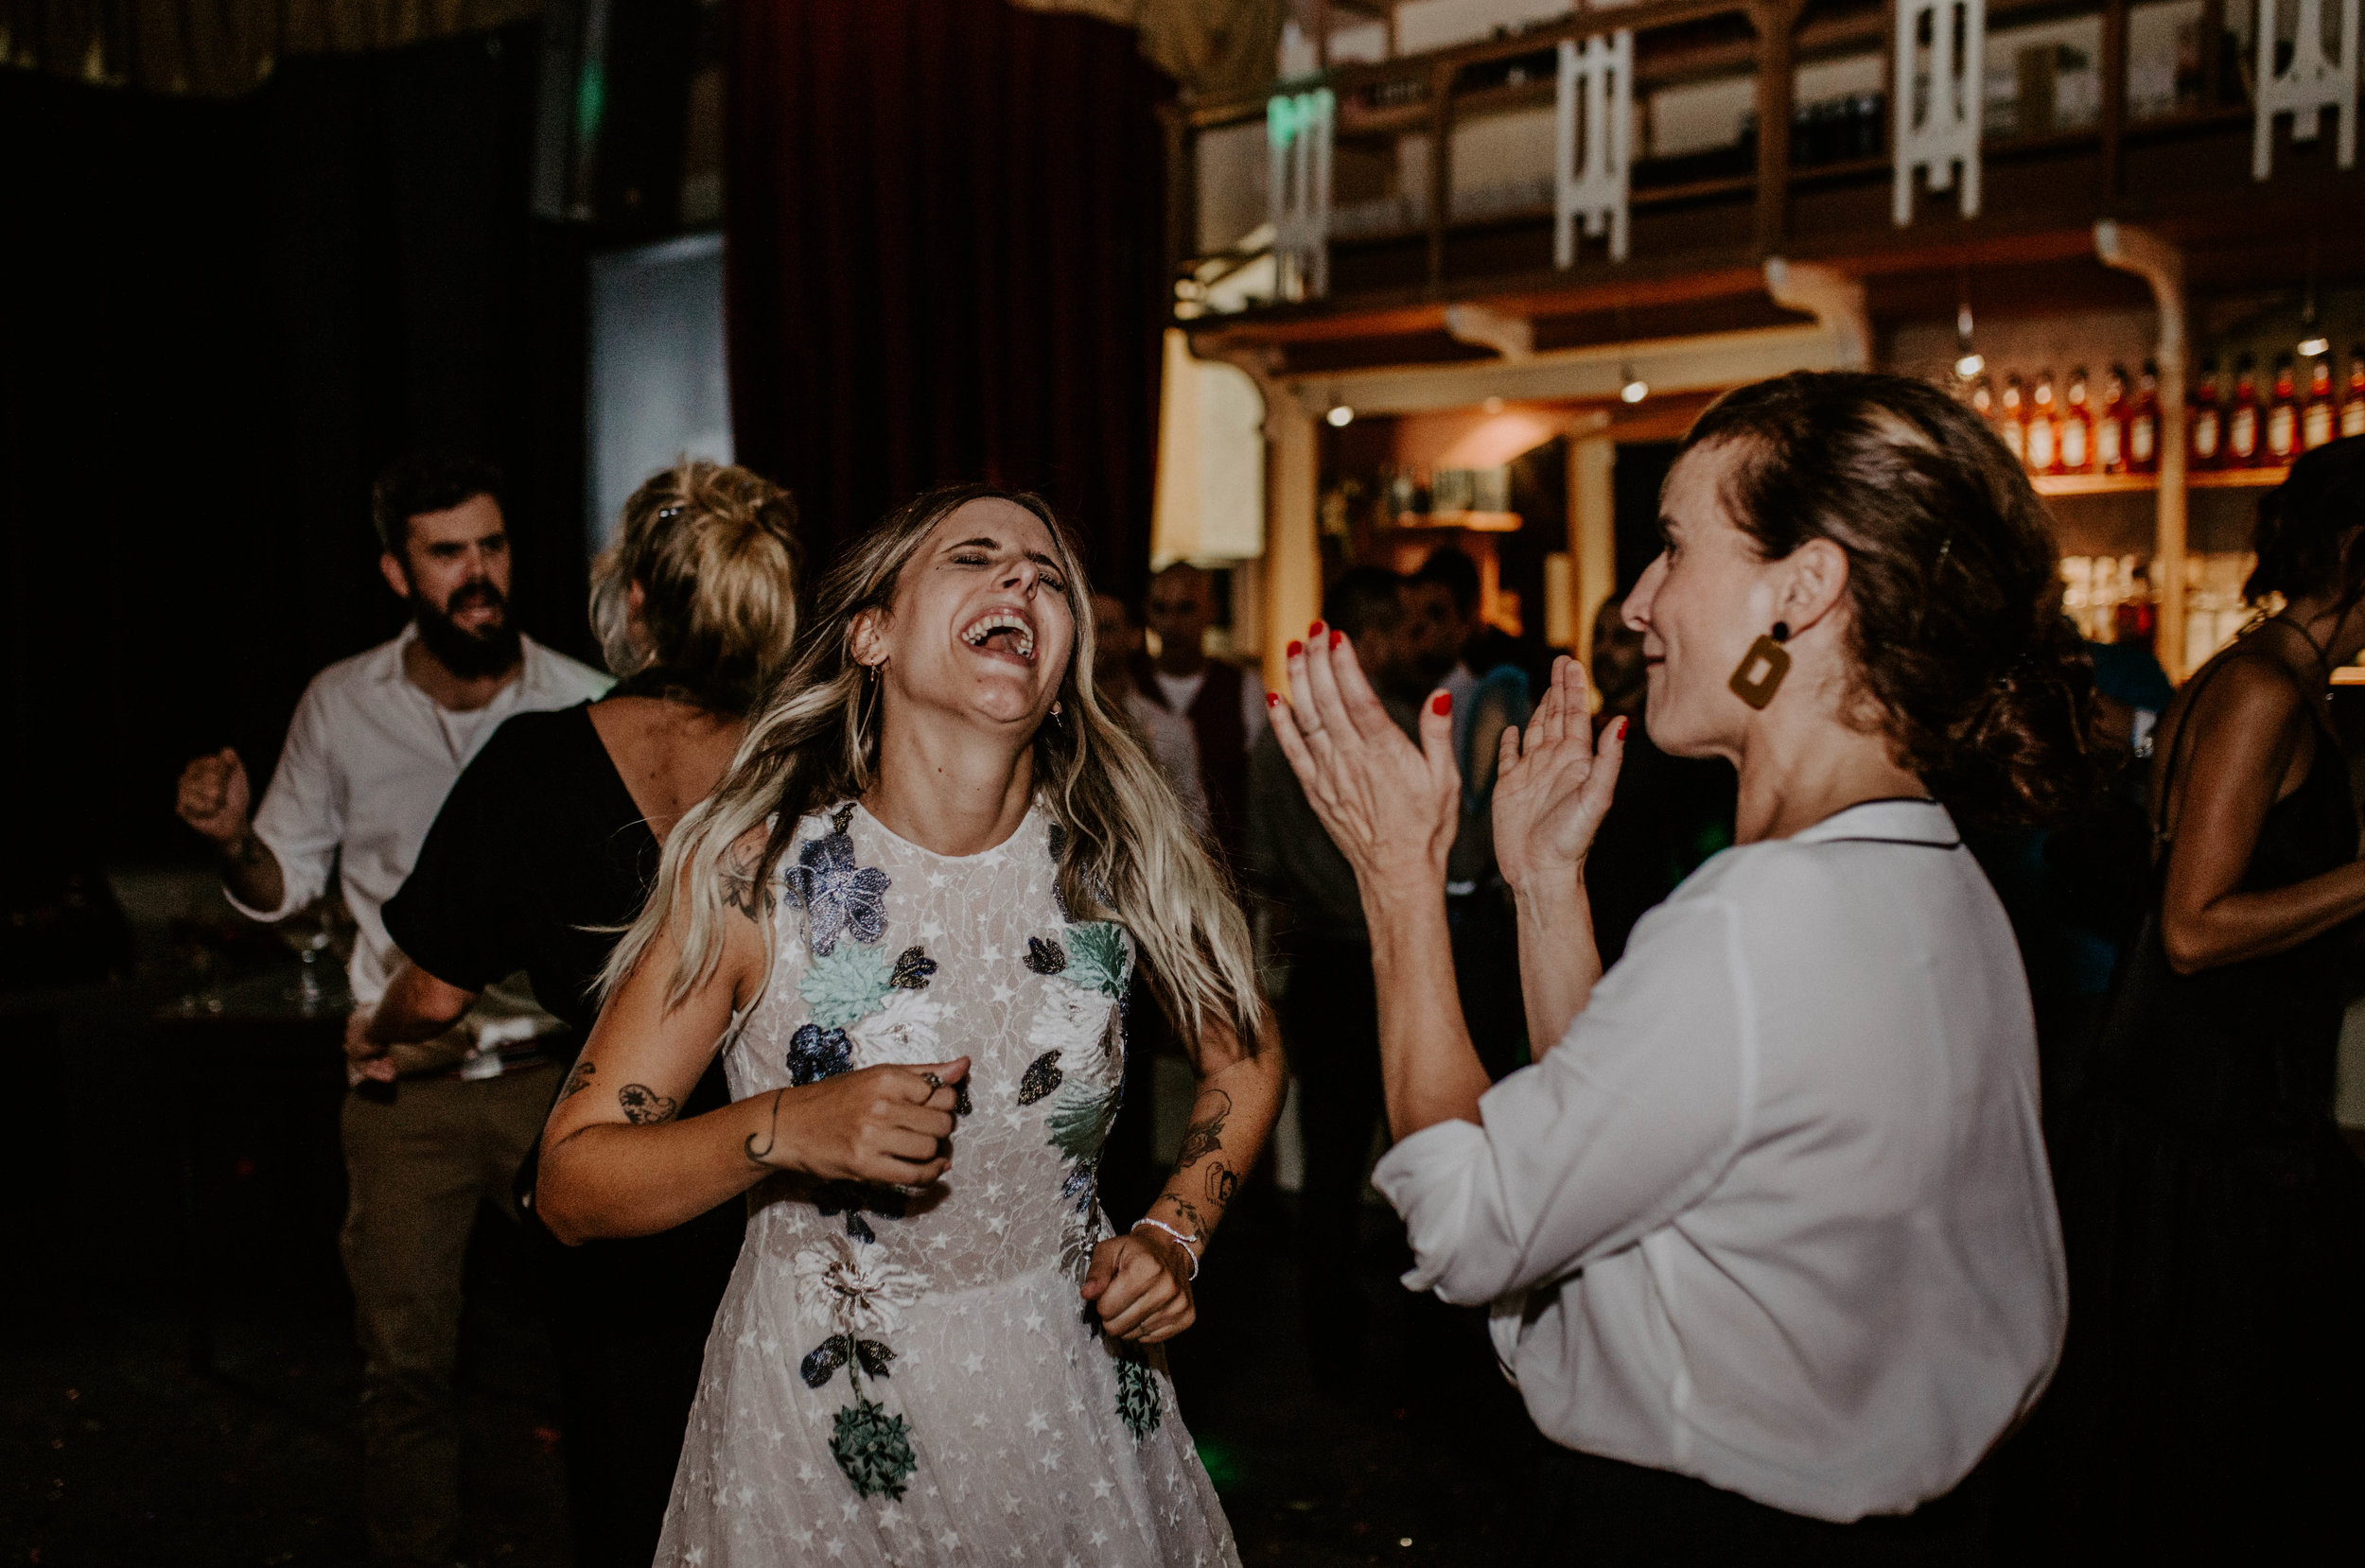 thenortherngirlphotography_bodasindustriales_bodasdiferentes_weddingphotographer_spanishphotographer_spanisgweddingphotographer_happyendings_mercantic_elsiglomercantic_antichrist_love_neon_weddingtattoo_CYNTHIAMANOLO-1000.jpg